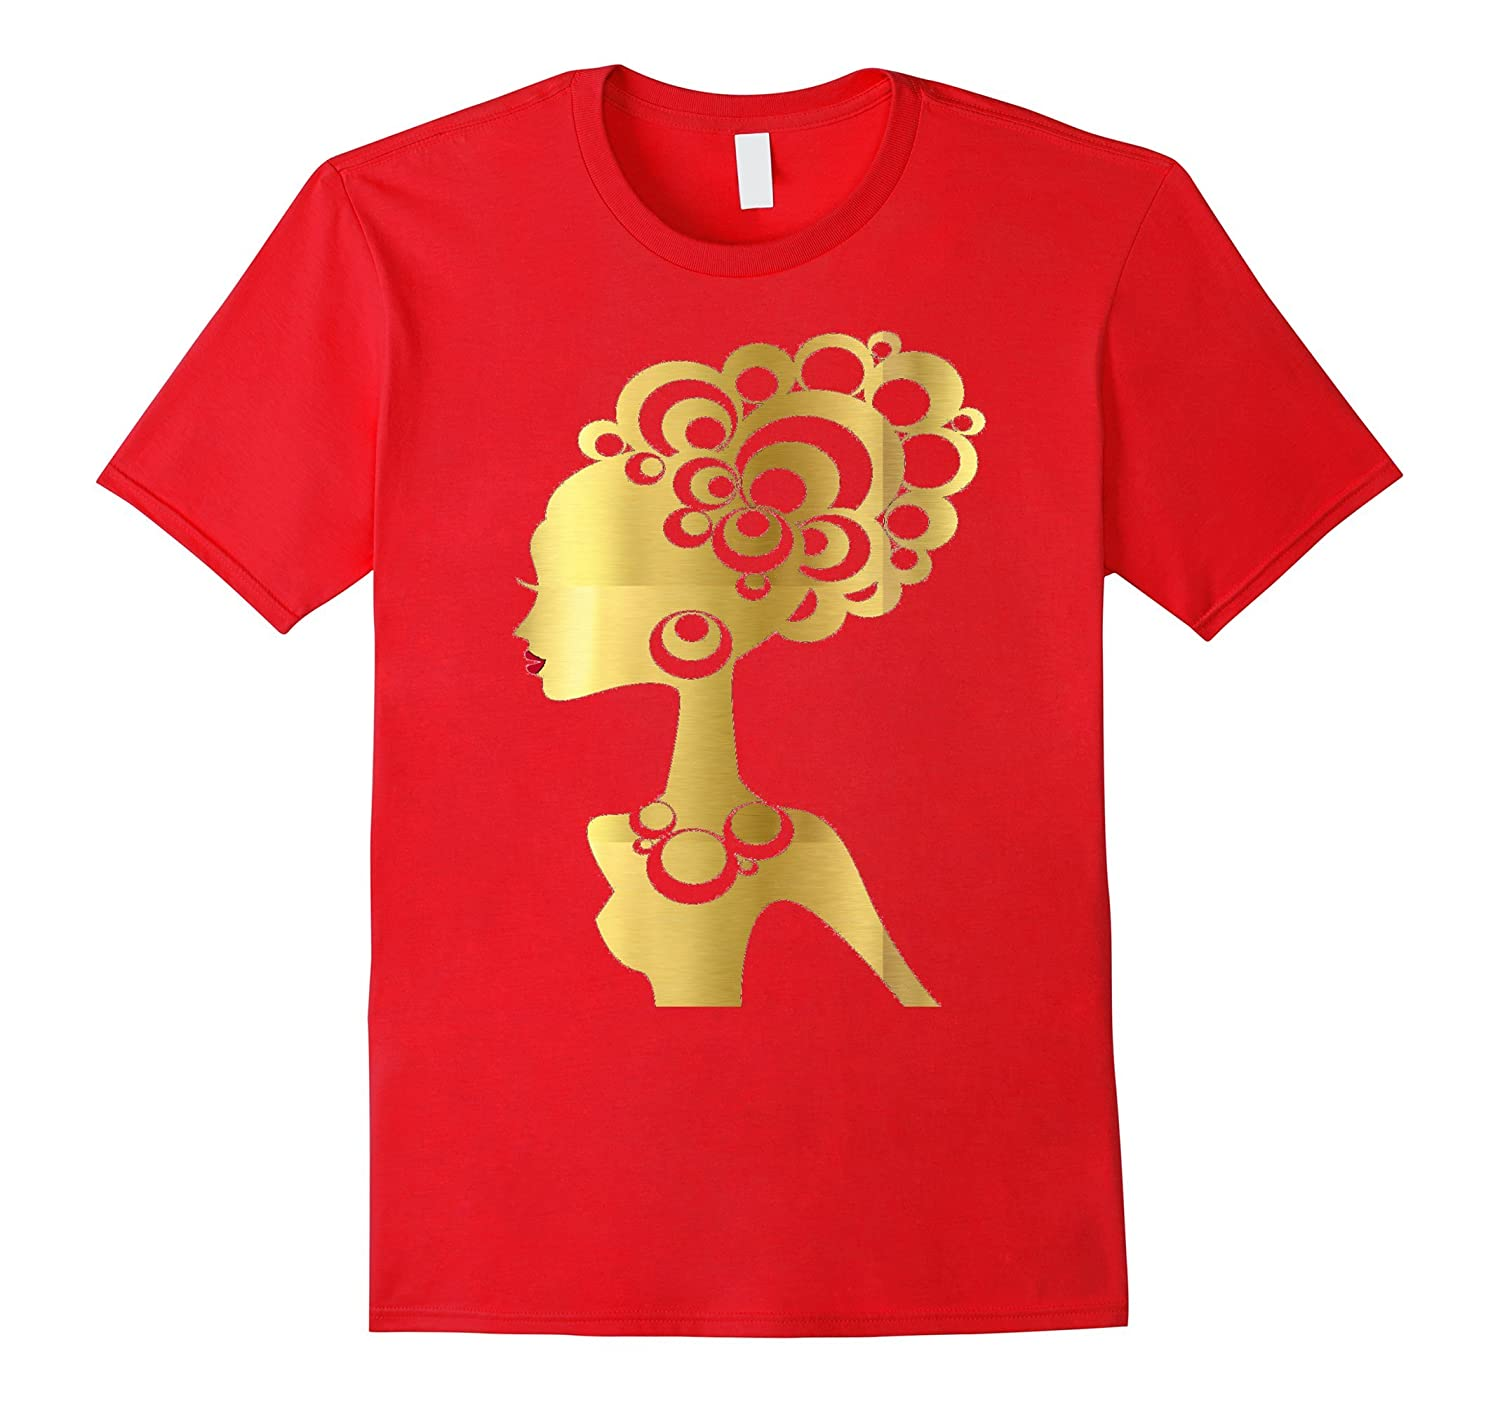 Diva Black Girl Magic Shirt Gold African Queen Poppin-Vaci